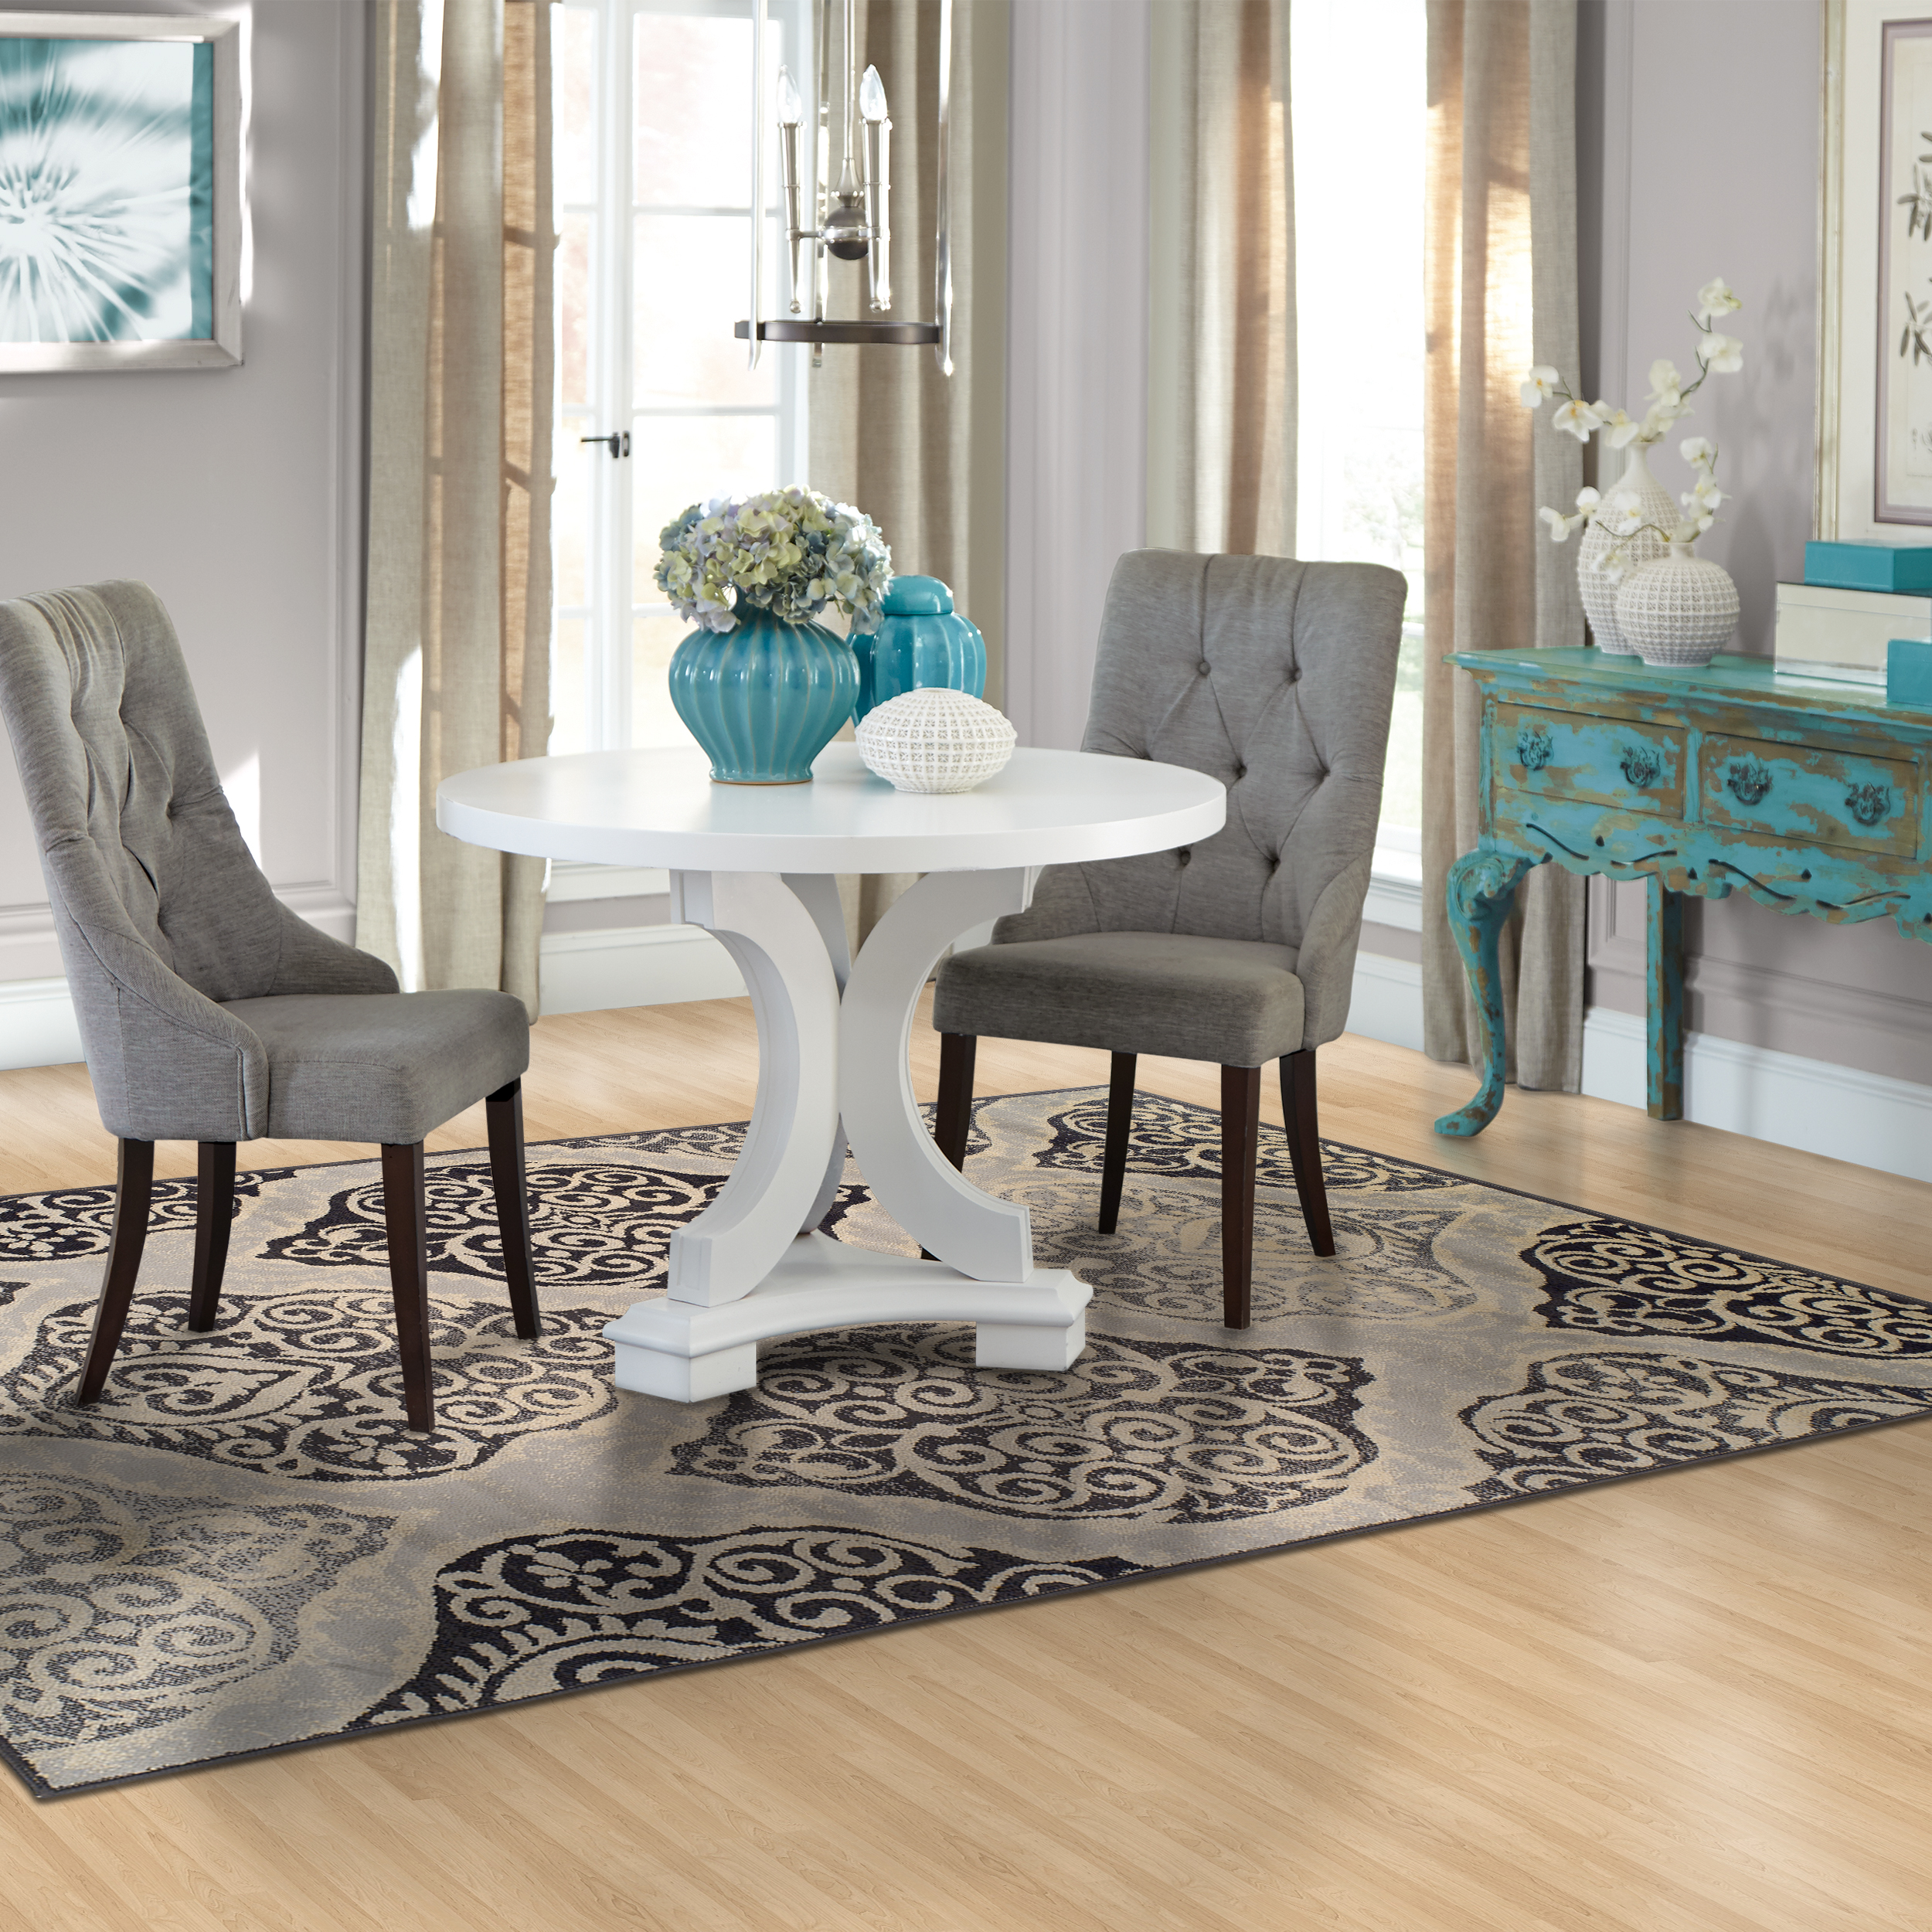 of white living modern unique small stylish ideas rug area design stunning with brilliant room rugs